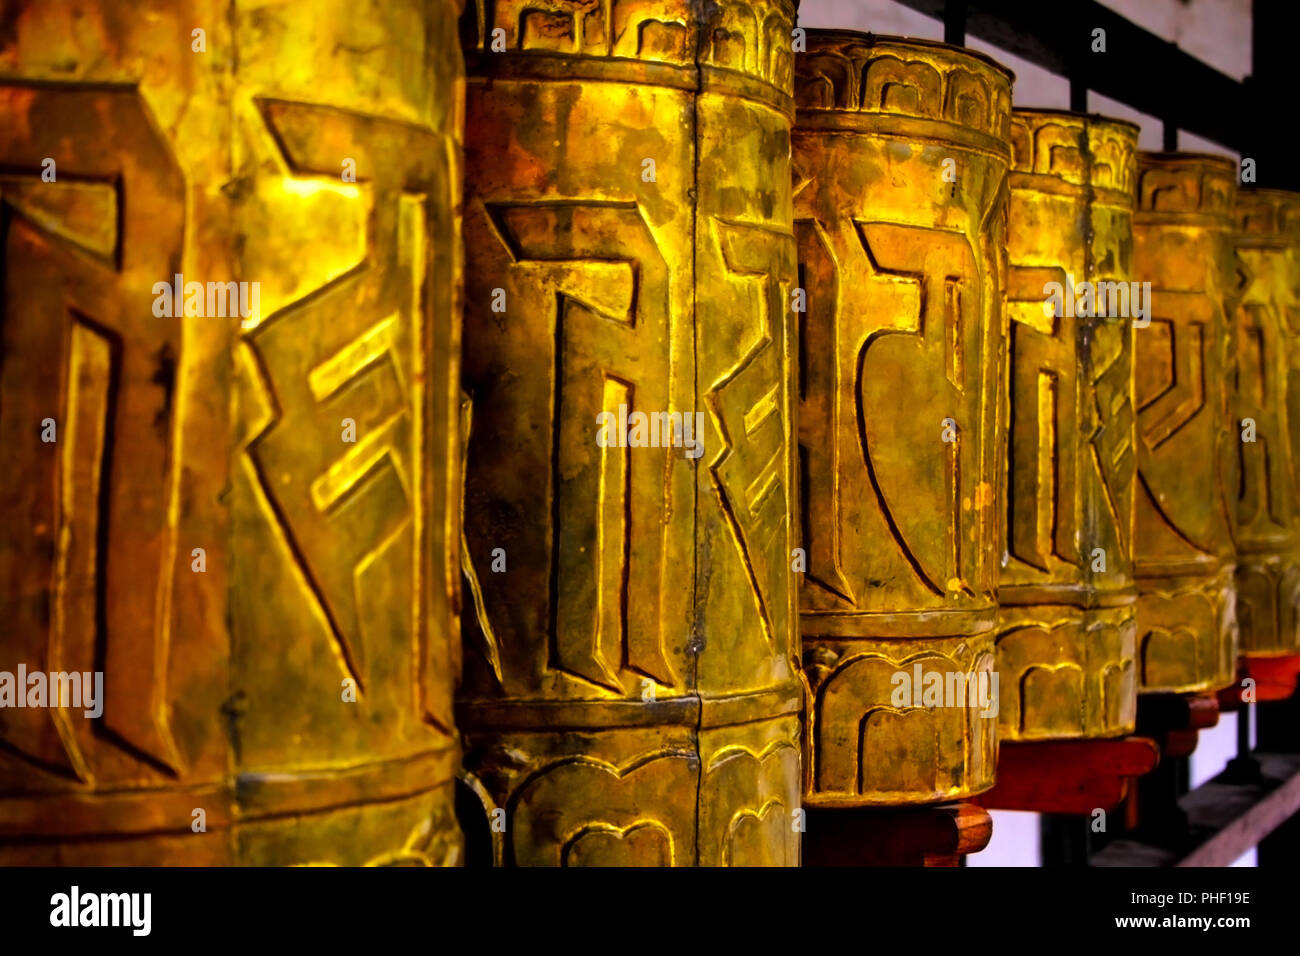 Buddhist prayer wheel with mantra sounds